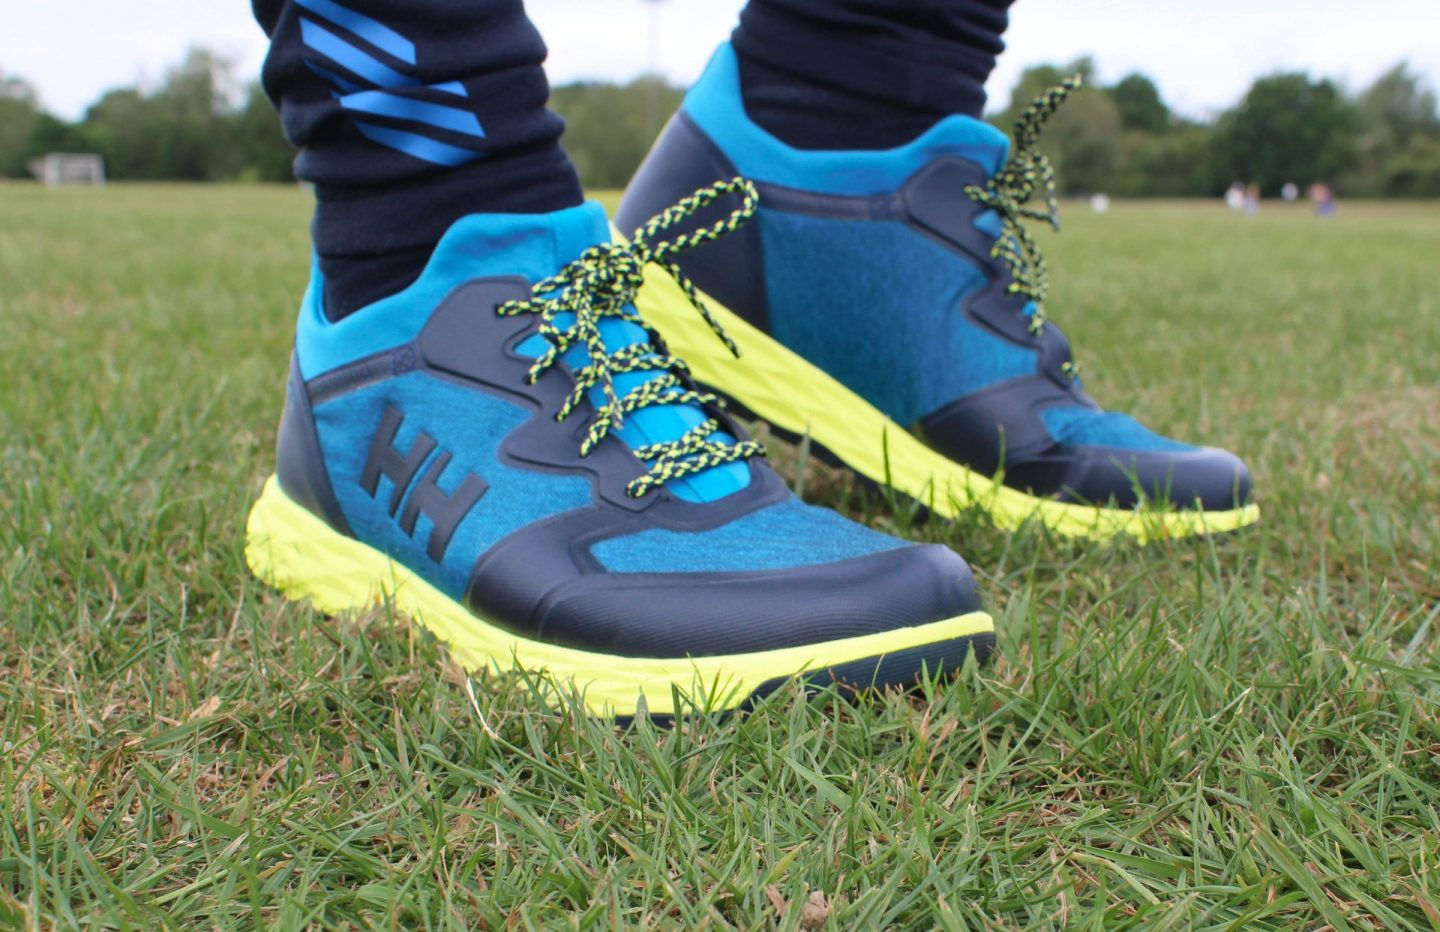 The ULLR Tailgate trainers from Helly Hansen